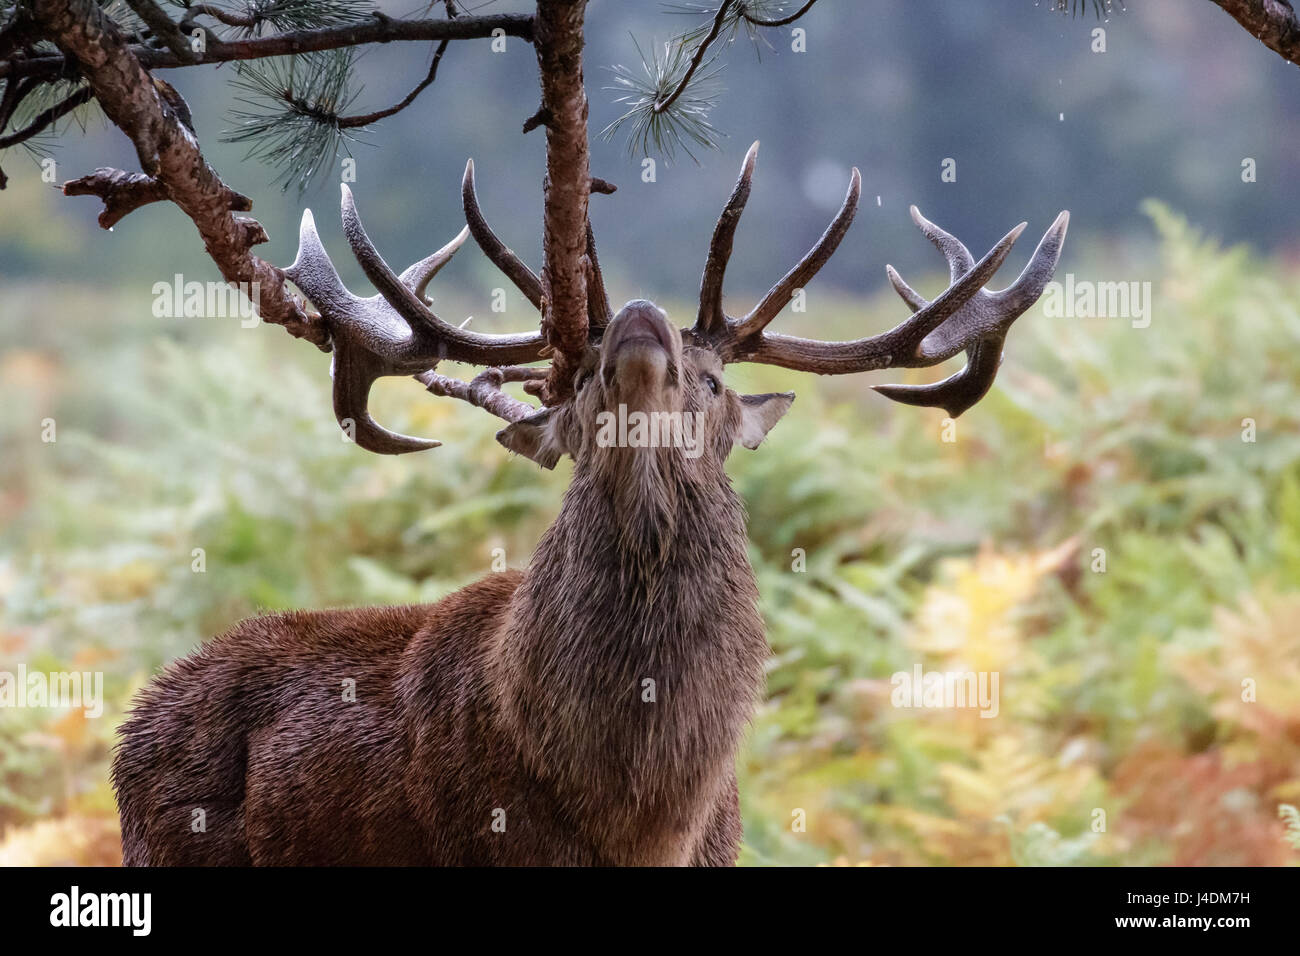 Red Deer rut stag  (Cervus elaphus) sharpening up his antlers or possibly marking territory on fir tree branches - Stock Image